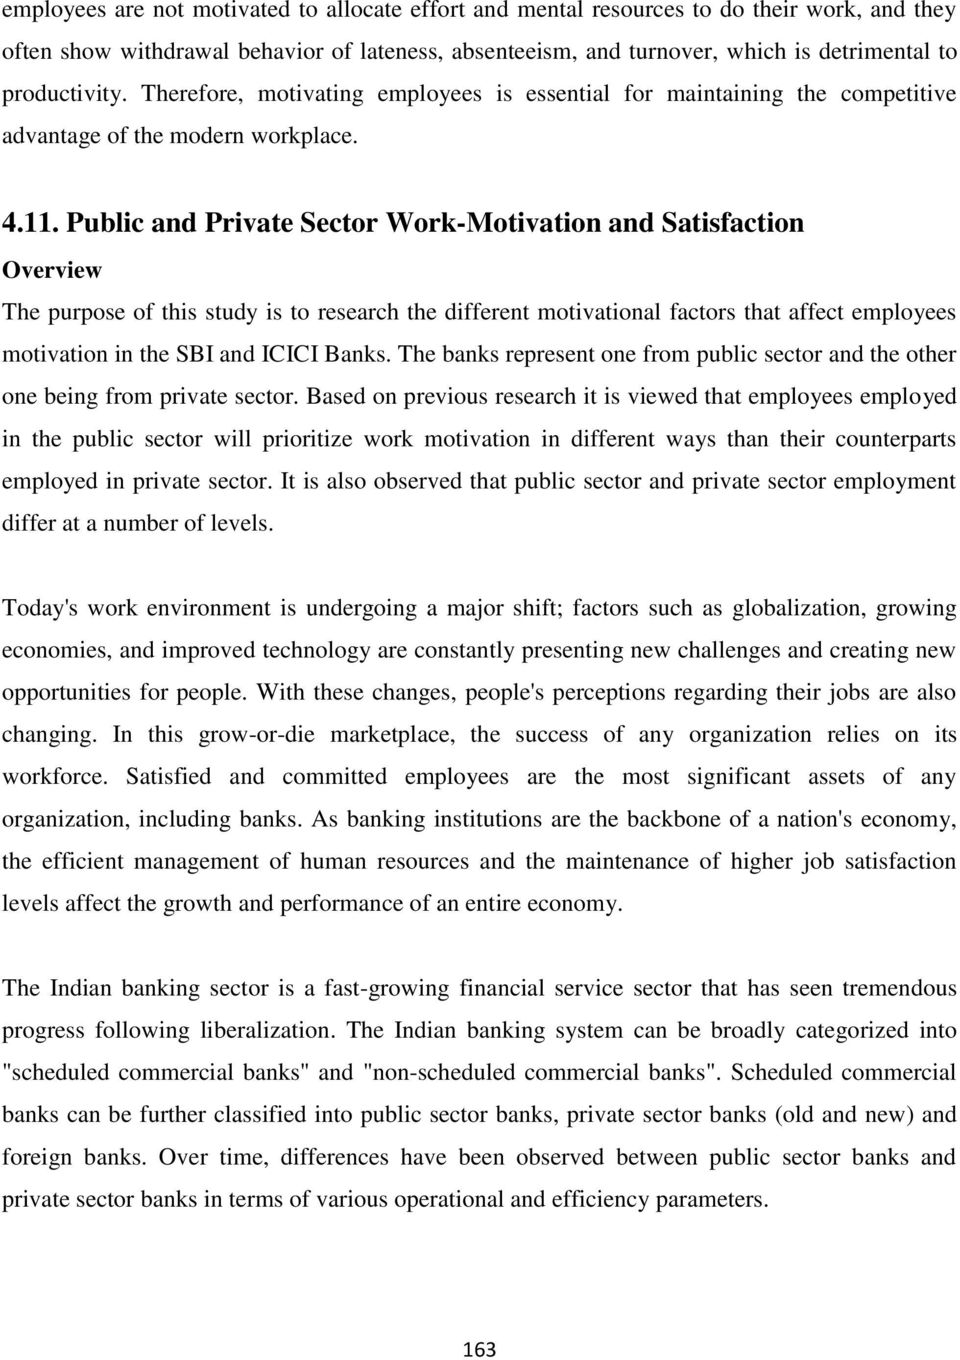 difference between public sector and private sector banks